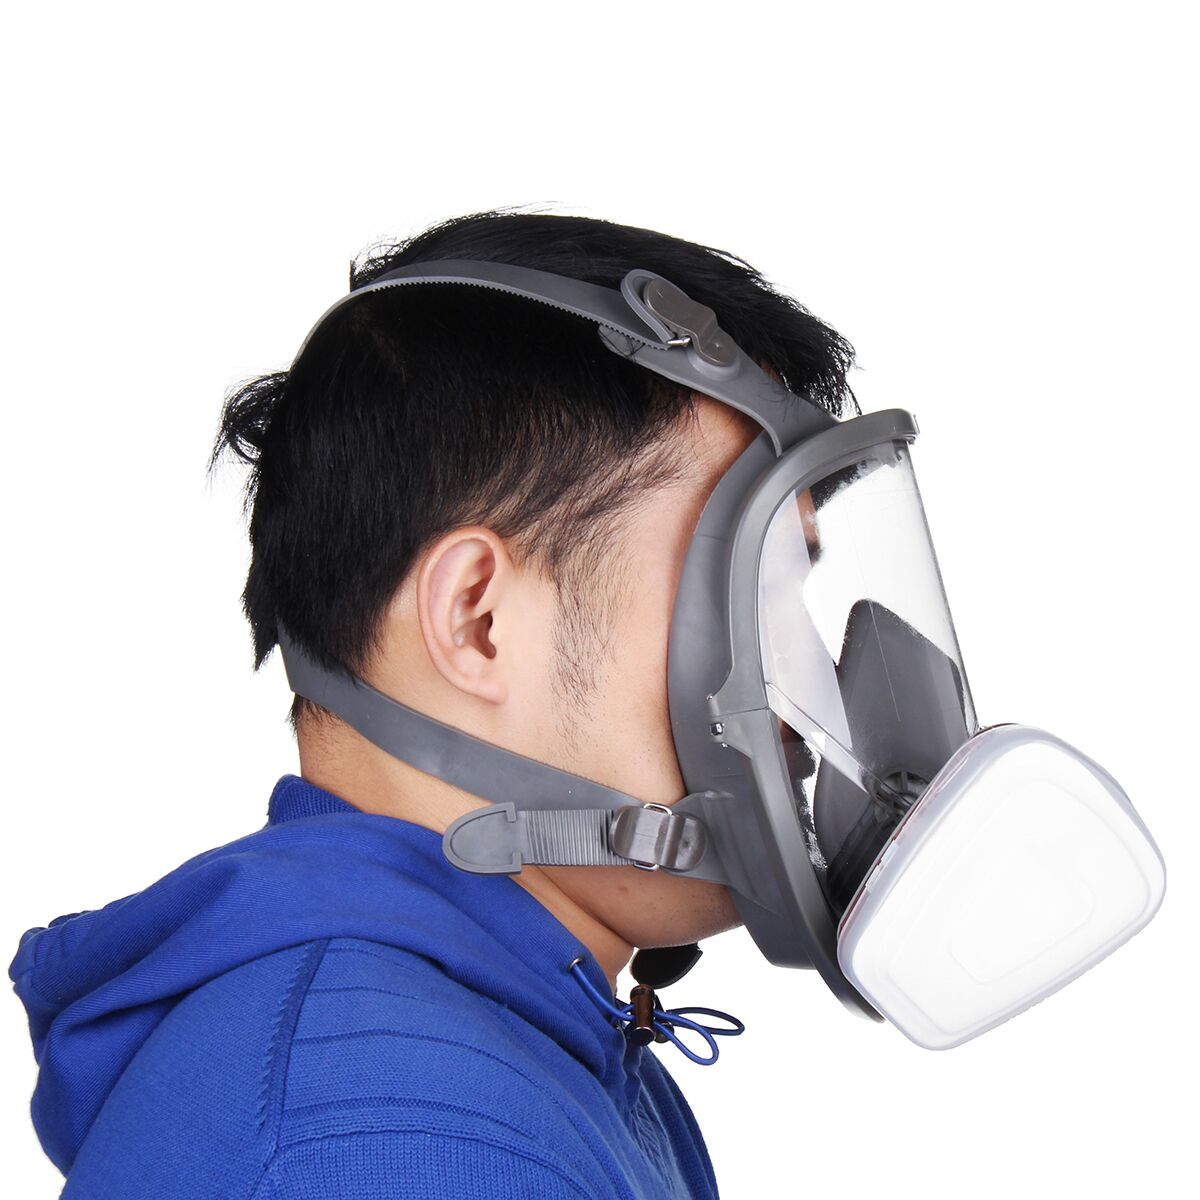 15 in 1 Full Face Gas Mask Facepiece Respirator Painting Spraying Mask 6800 Dust